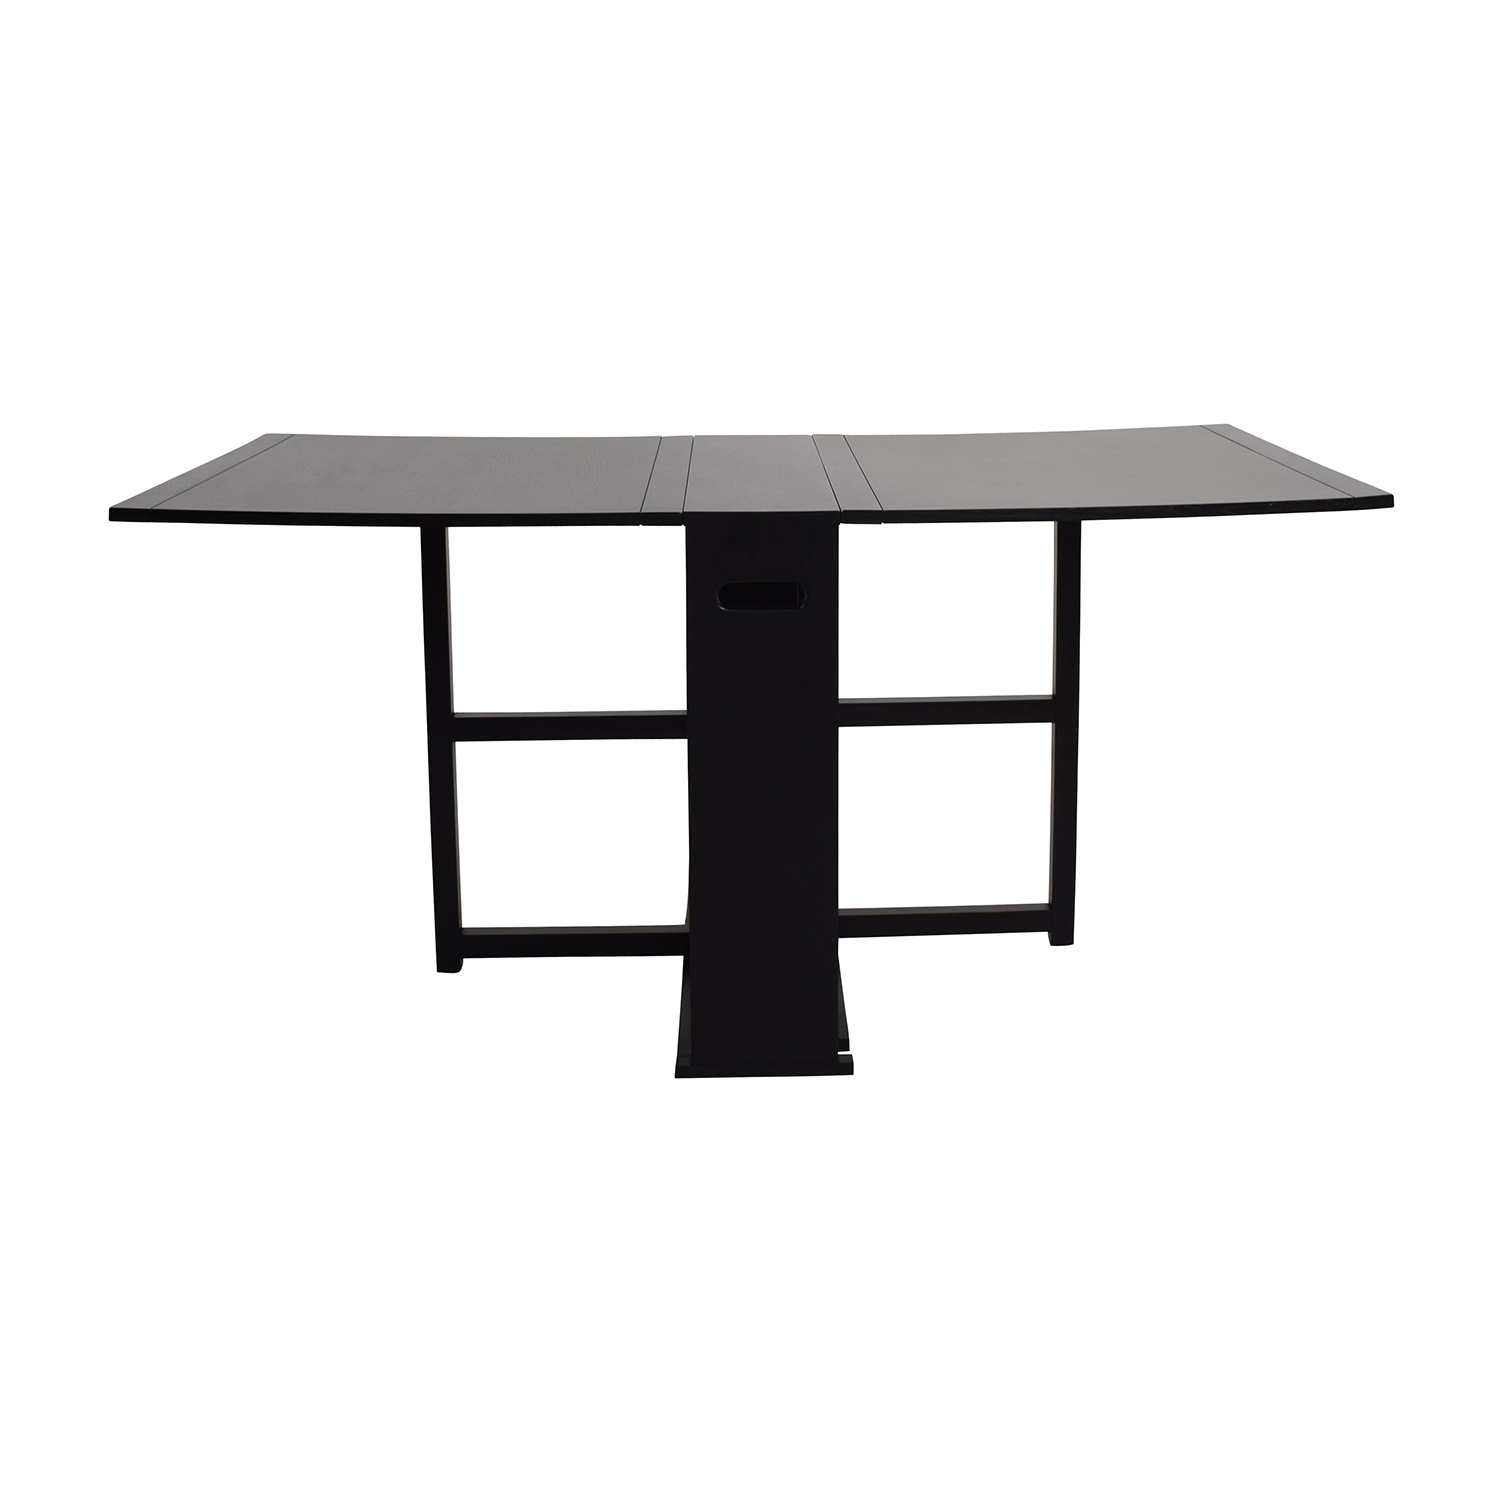 Crate and Barrel Crate & Barrel Gateleg Drop Leaf Fold Away Dining Table Dinner Tables